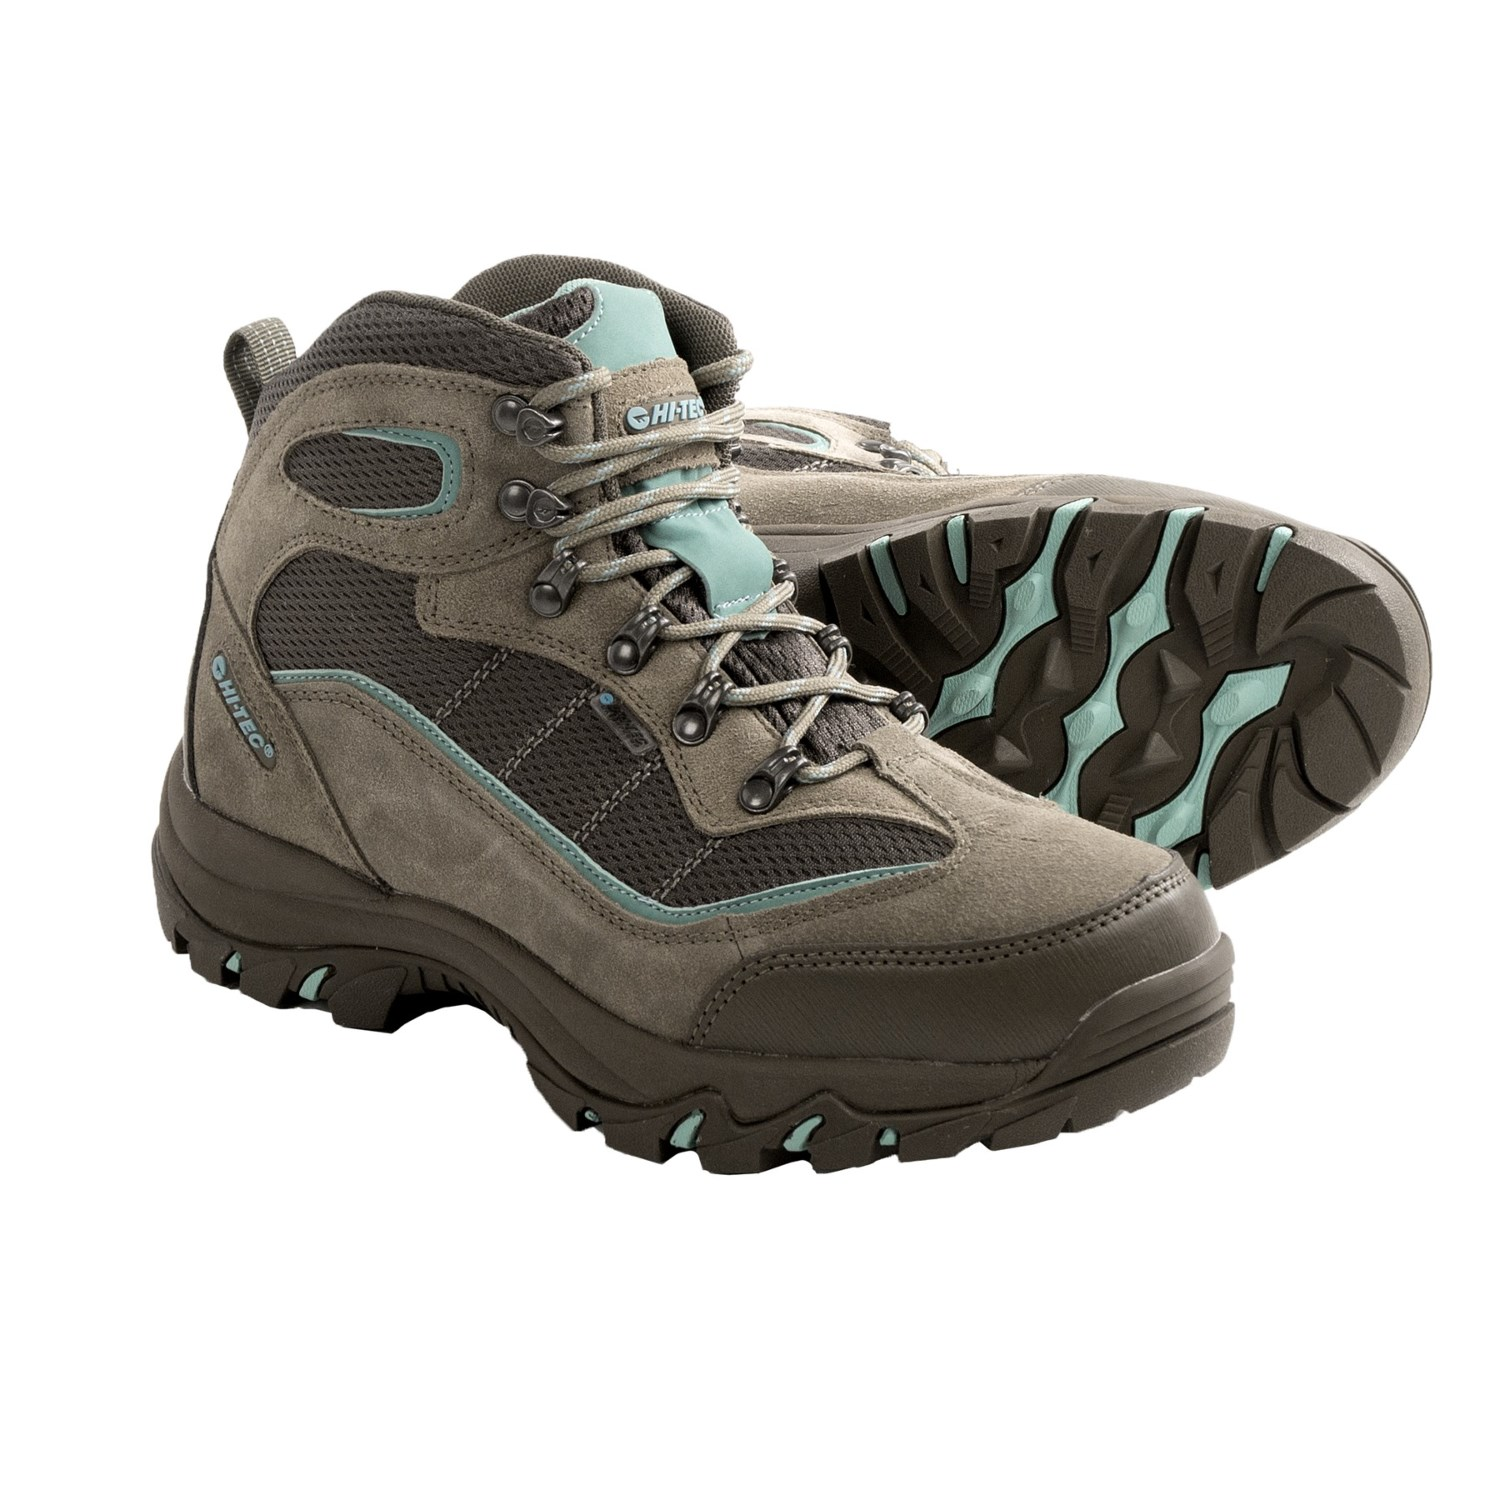 8c8051c4605 Hi-Tec Skamania Hiking Boots - Waterproof, Suede (For Women)